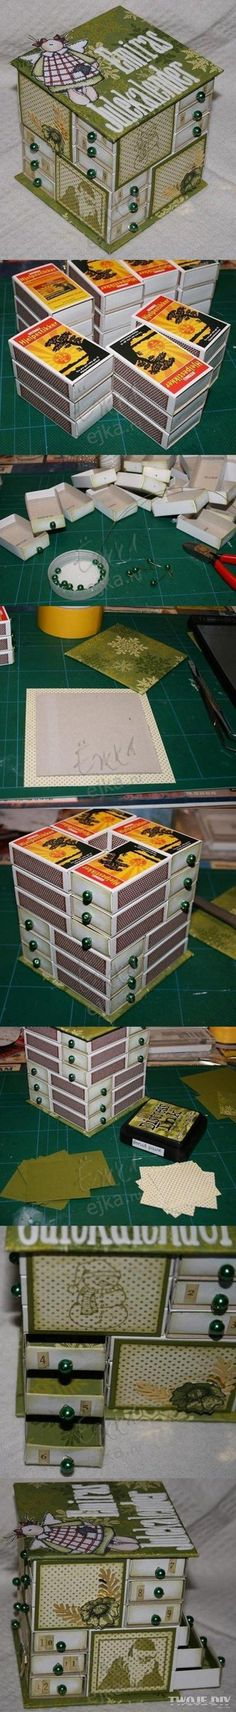 Matchbox tower. Could be used for storing little items like pins, sewing needles, buttons, etc. Cute!